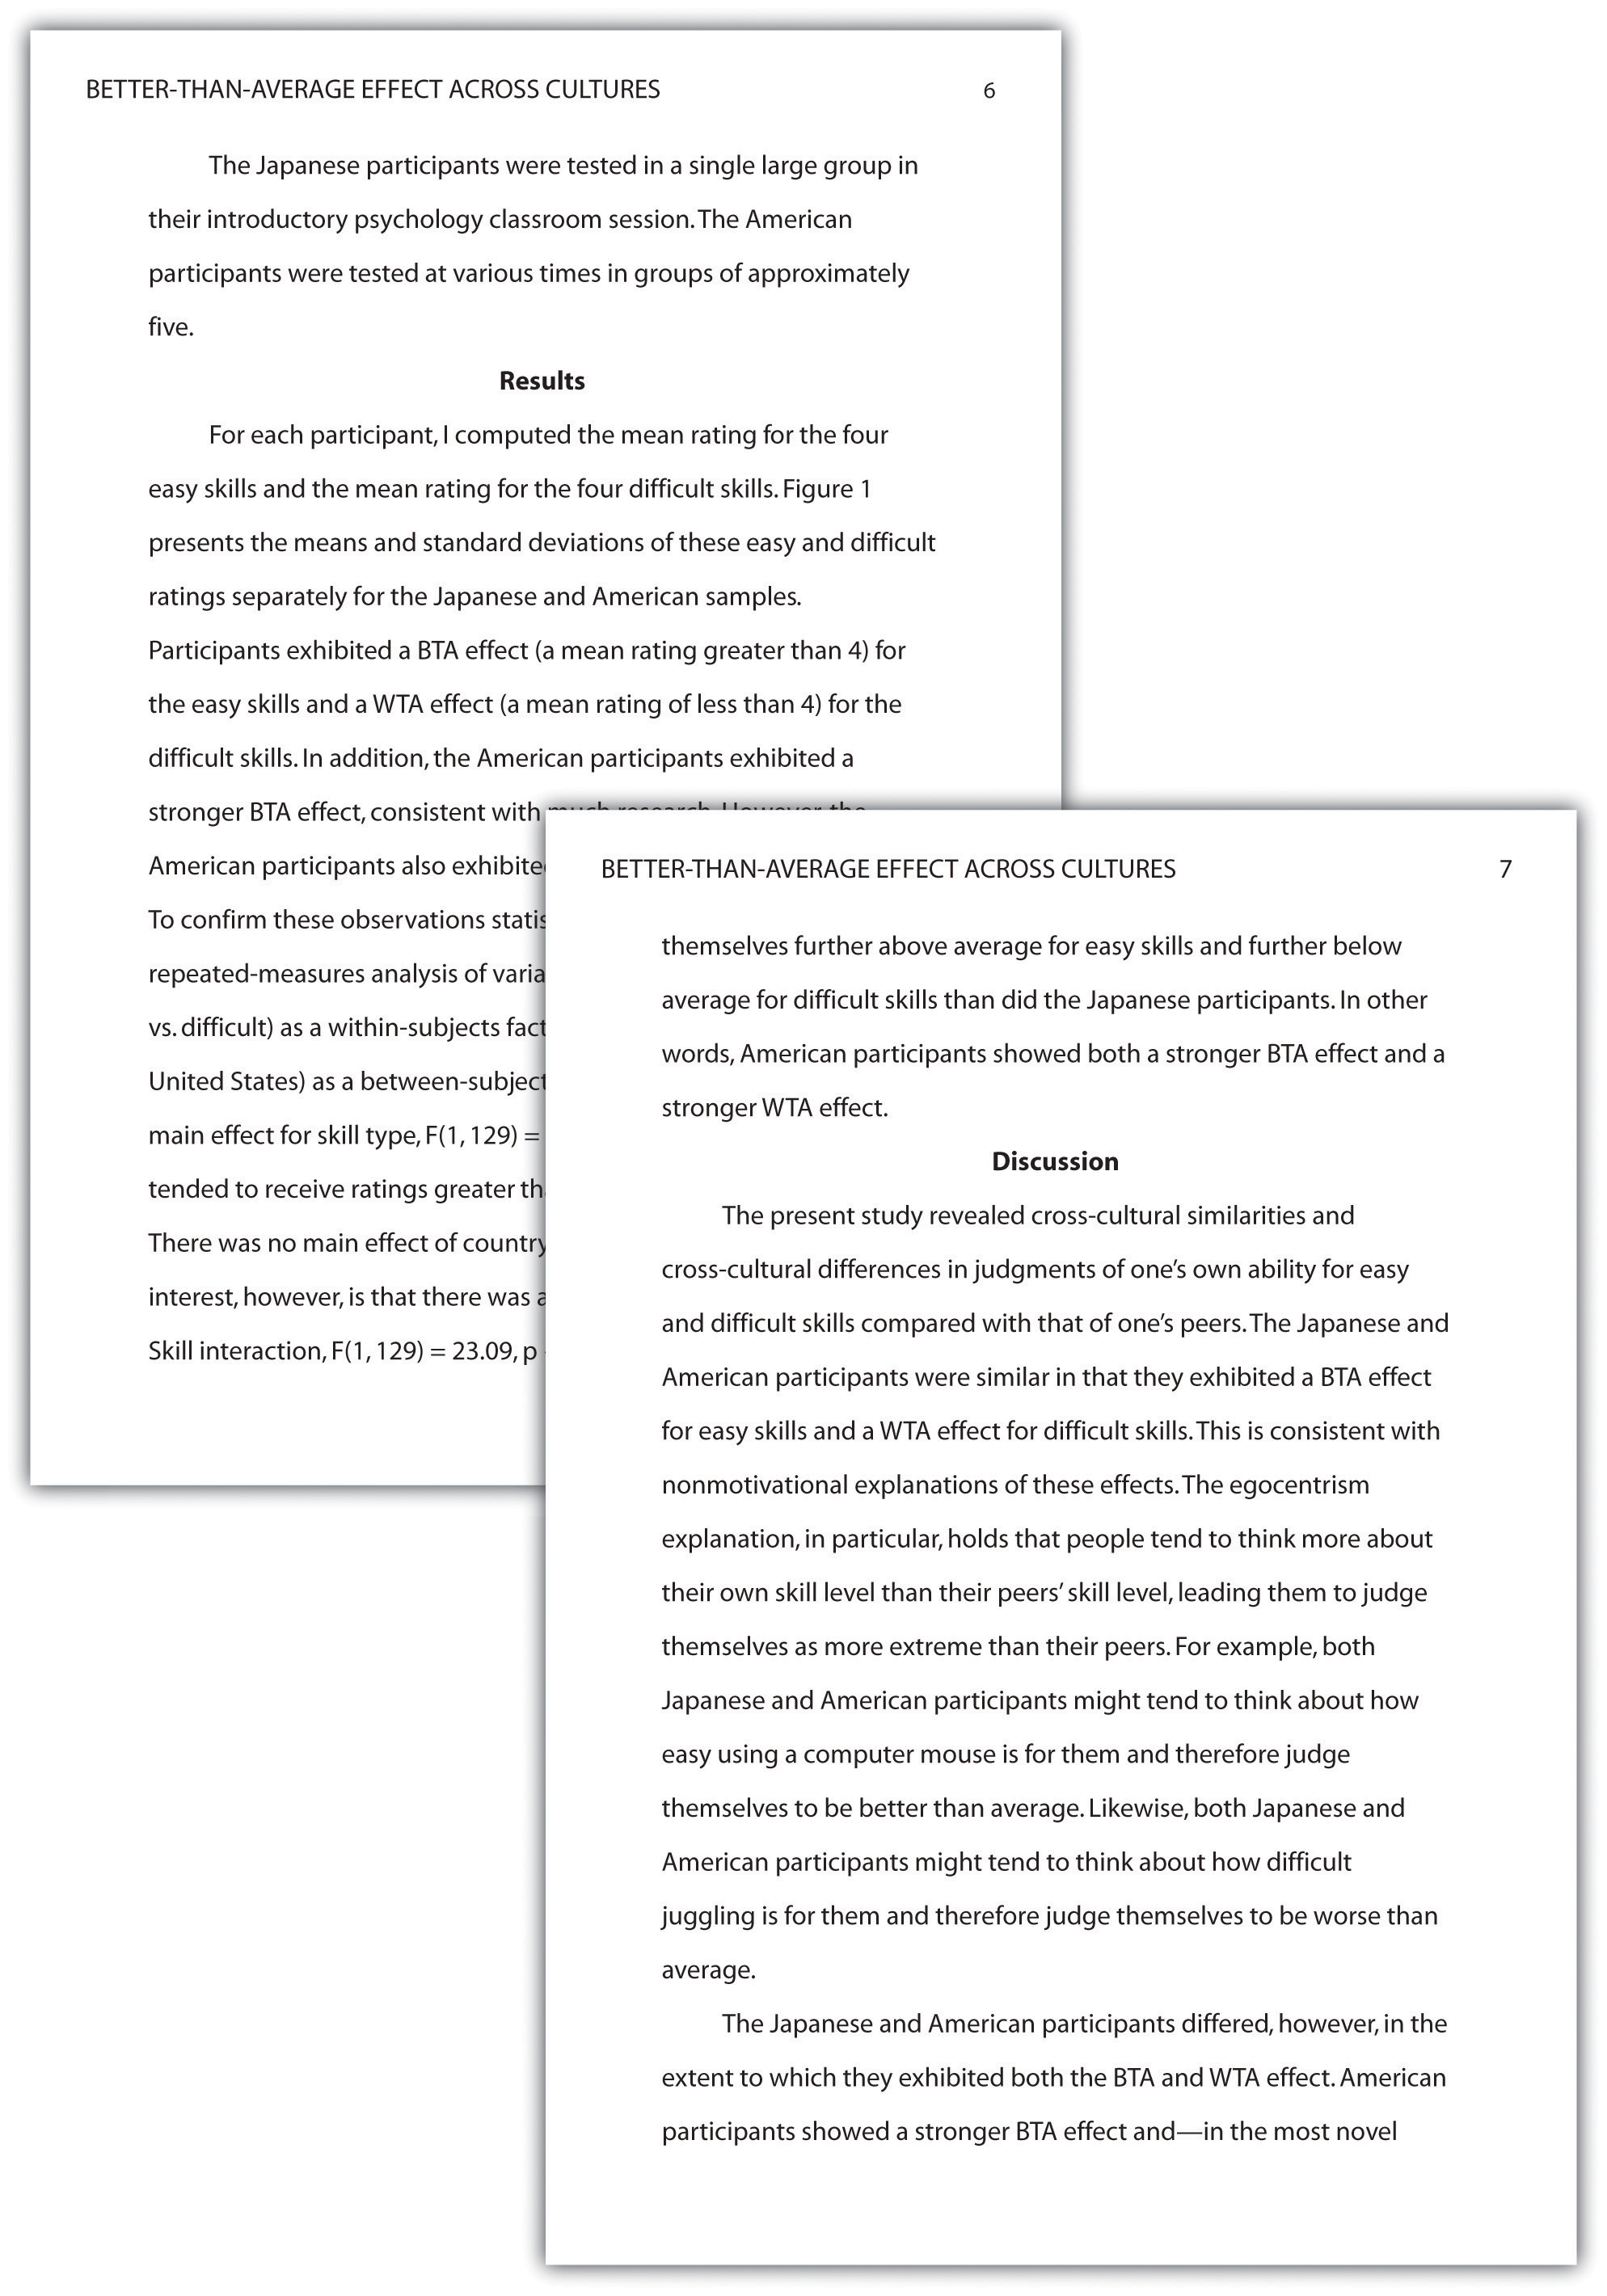 022 Research Paper Conclusion Of Incredible A About Bullying Writing Good How To Write The Pdf Full